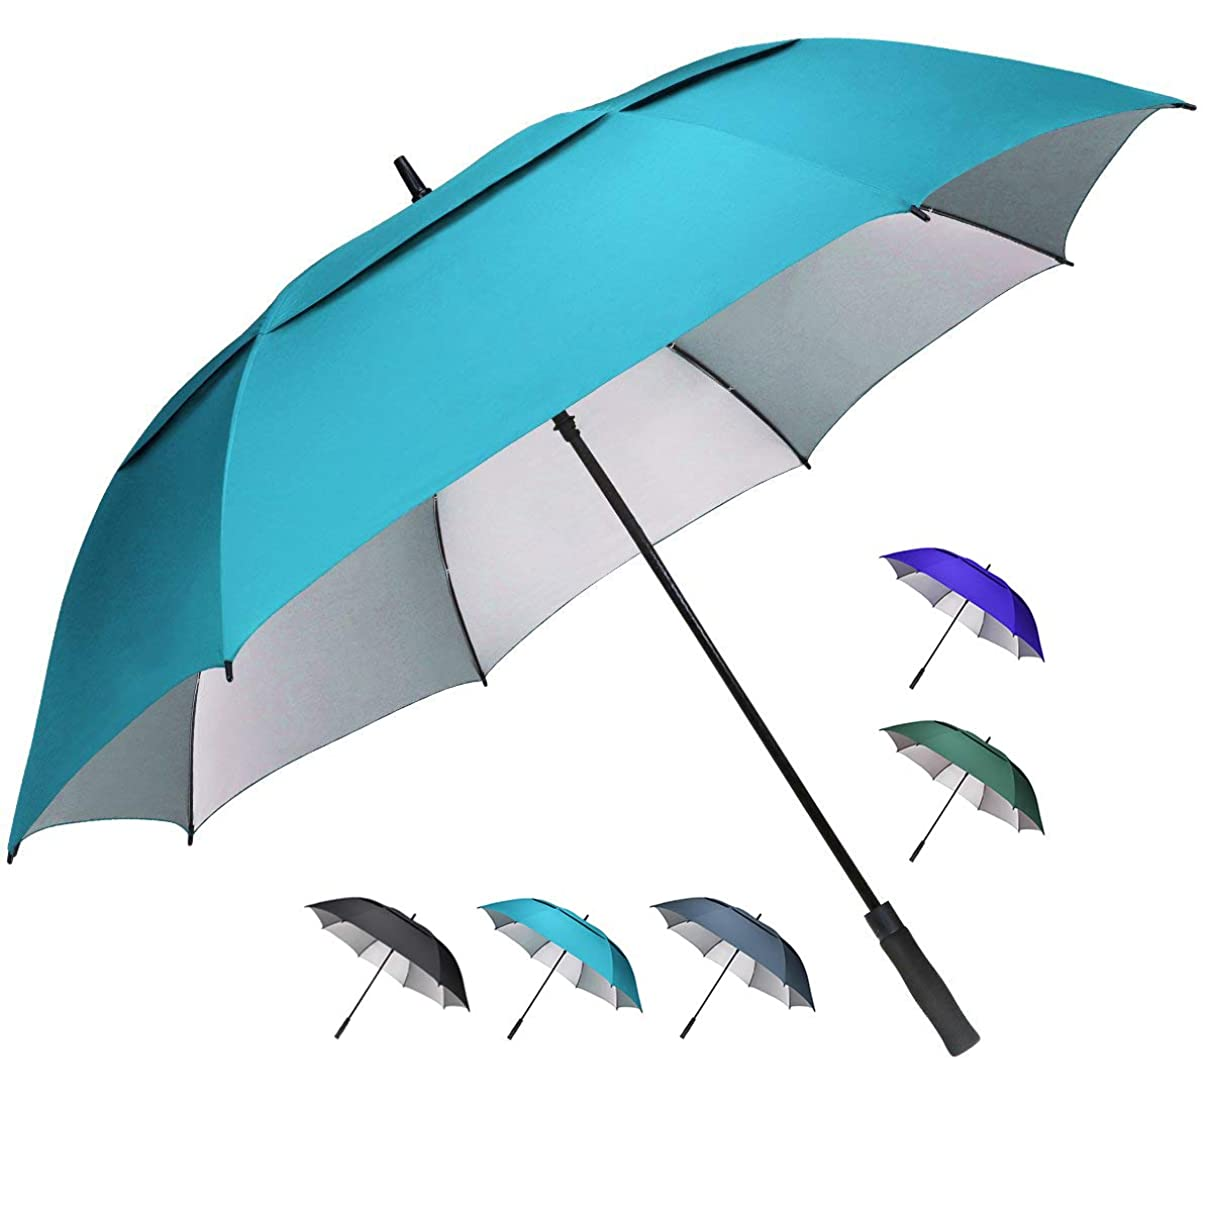 G4Free 62/68 inch Extra Large Windproof Golf Umbrella Automatic Open Umbrella Double Canopy Vented Anti UV Sun Protection Waterproof Oversize Stick Umbrellas for Men Women